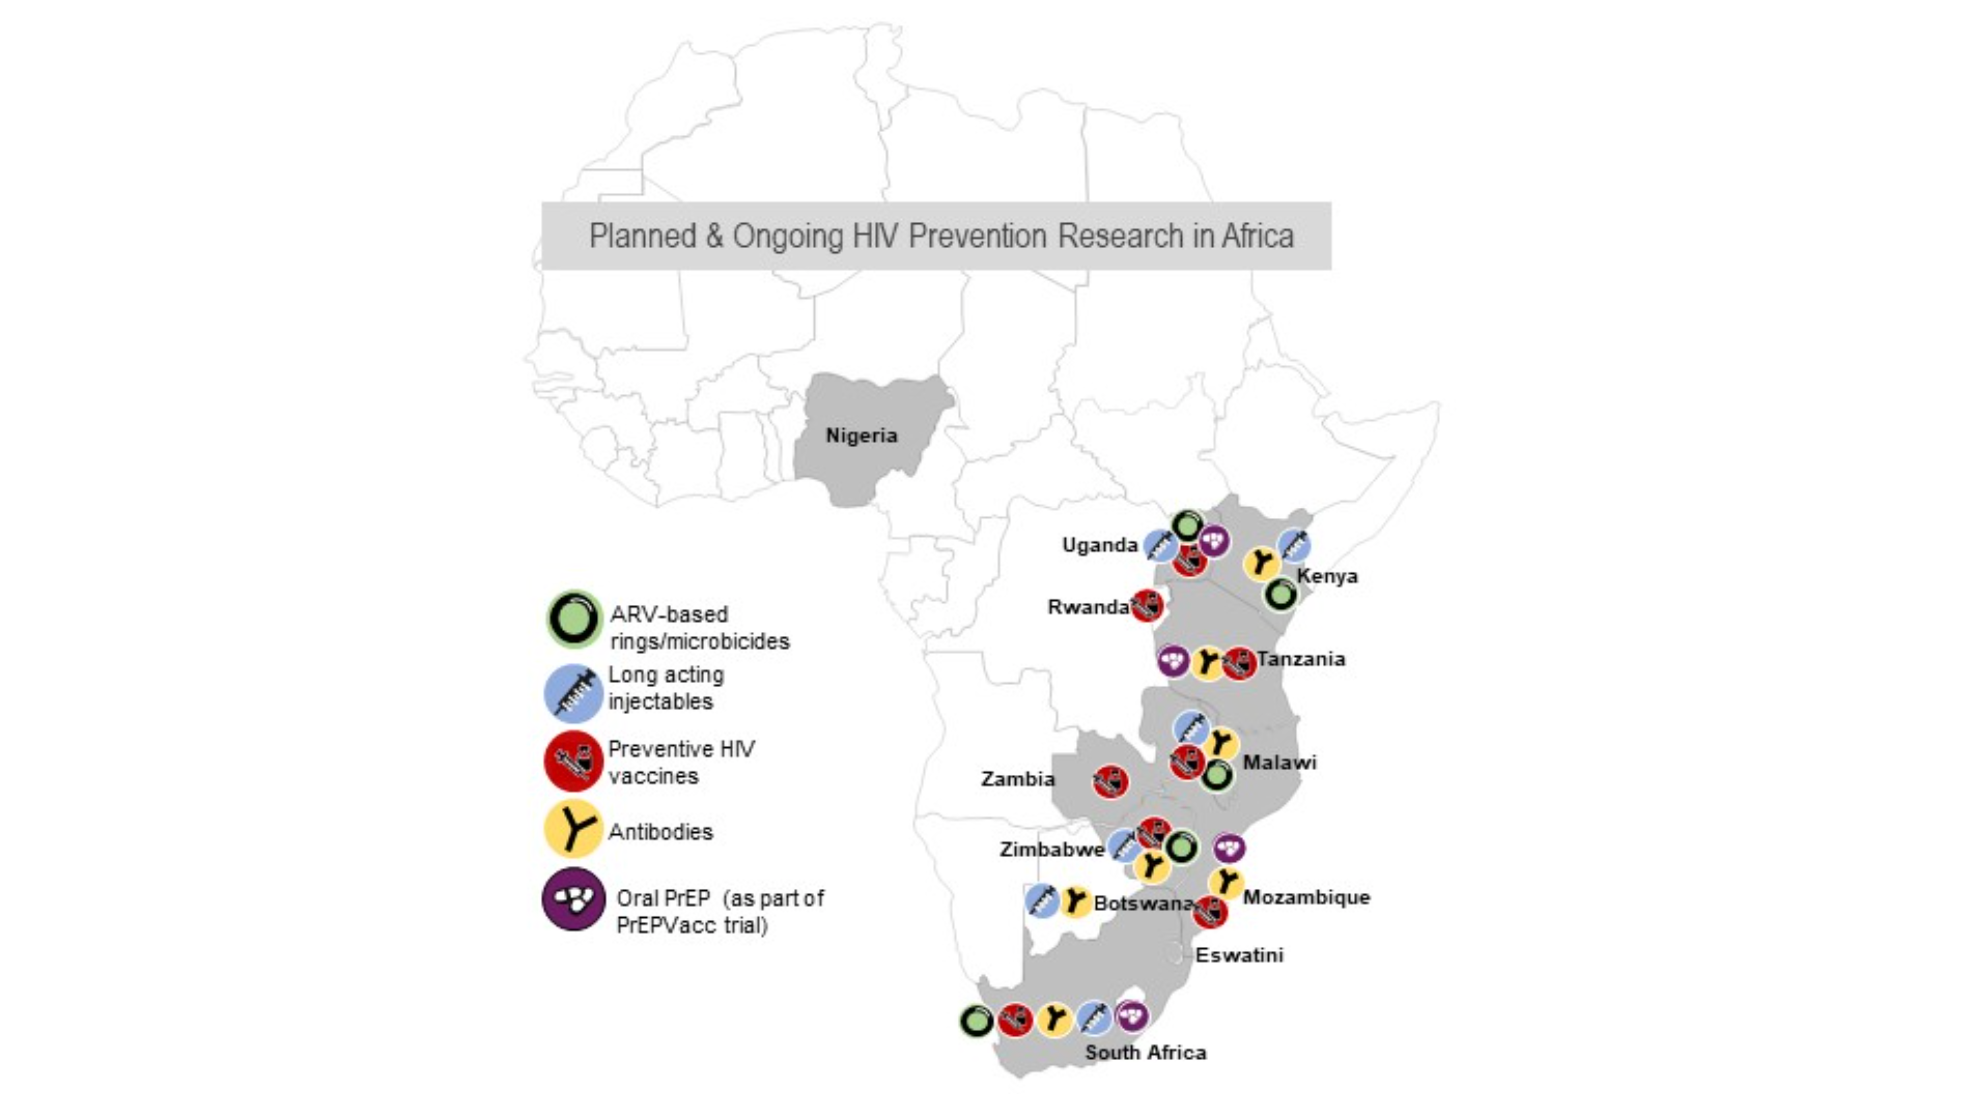 map of planned and ongoing HIV prevention research in Africa